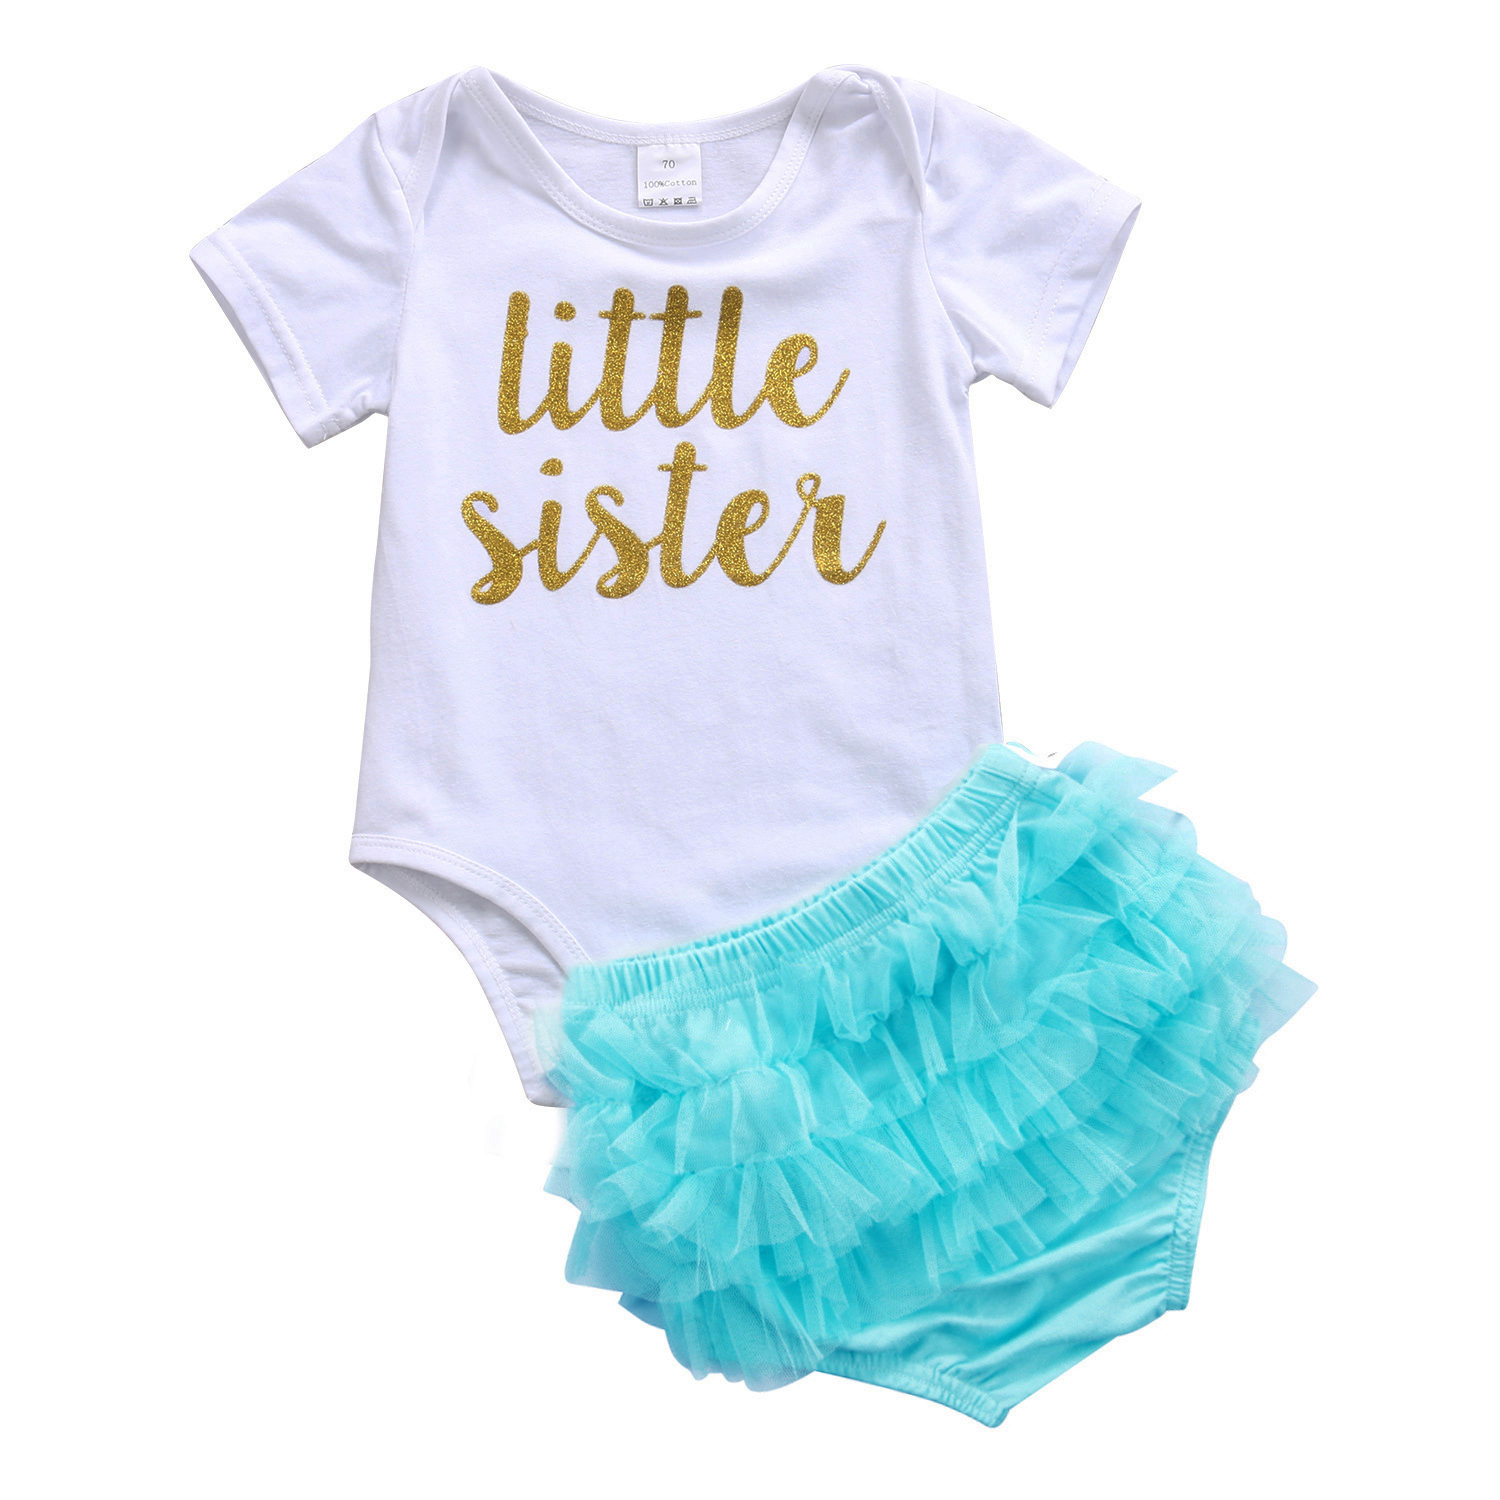 Newborn Toddler Infant Baby Girls Tops Romper Layered Tulle Shorts 2Pcs Outfits Set Lovely Clothes 2019